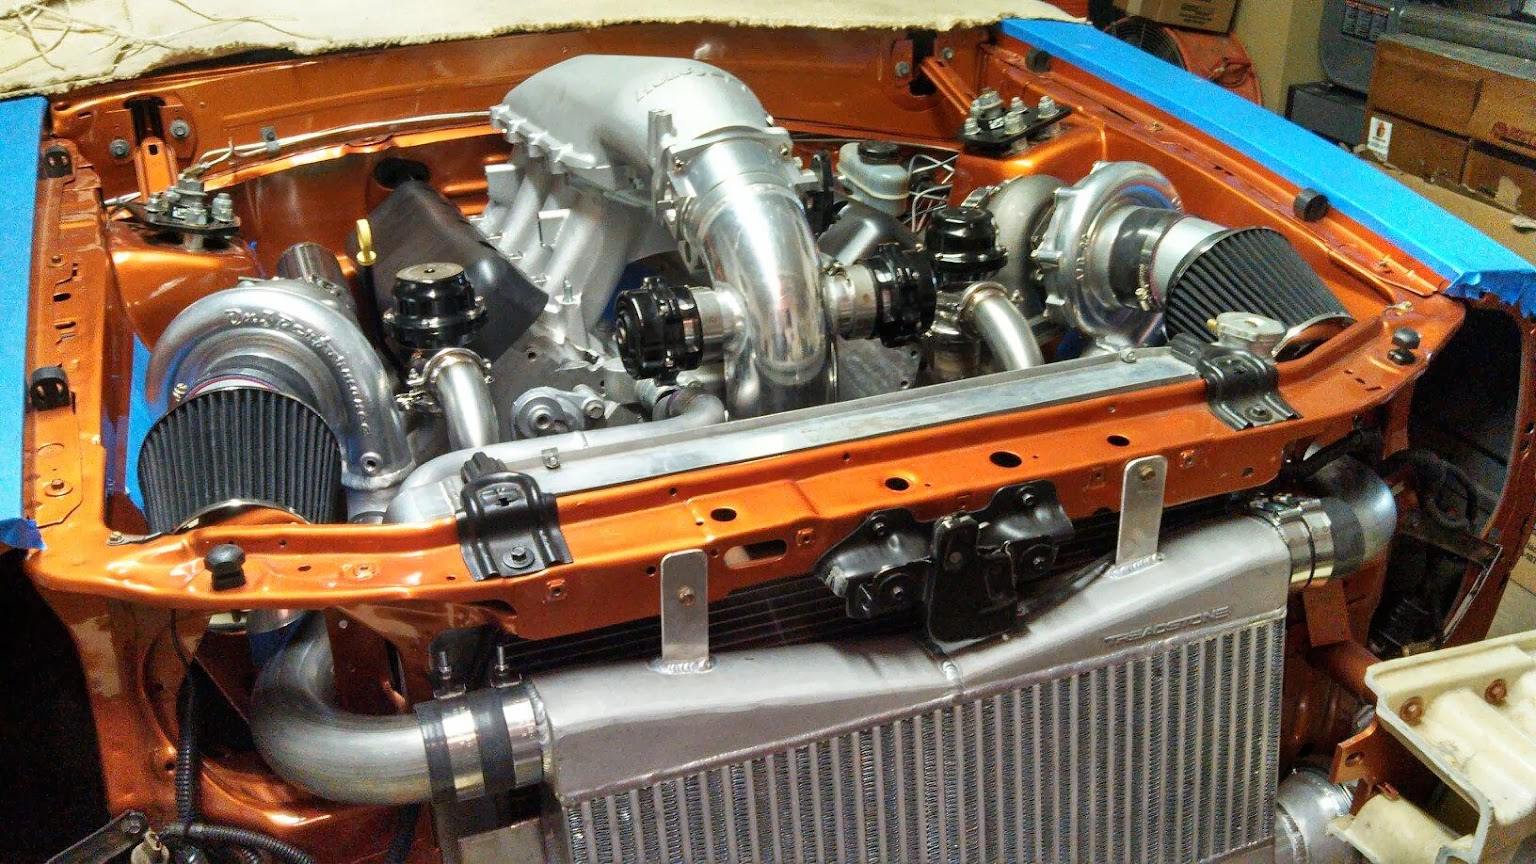 Twin Turbo Lsx 6 0 Notch Project Ford Mustang Forums